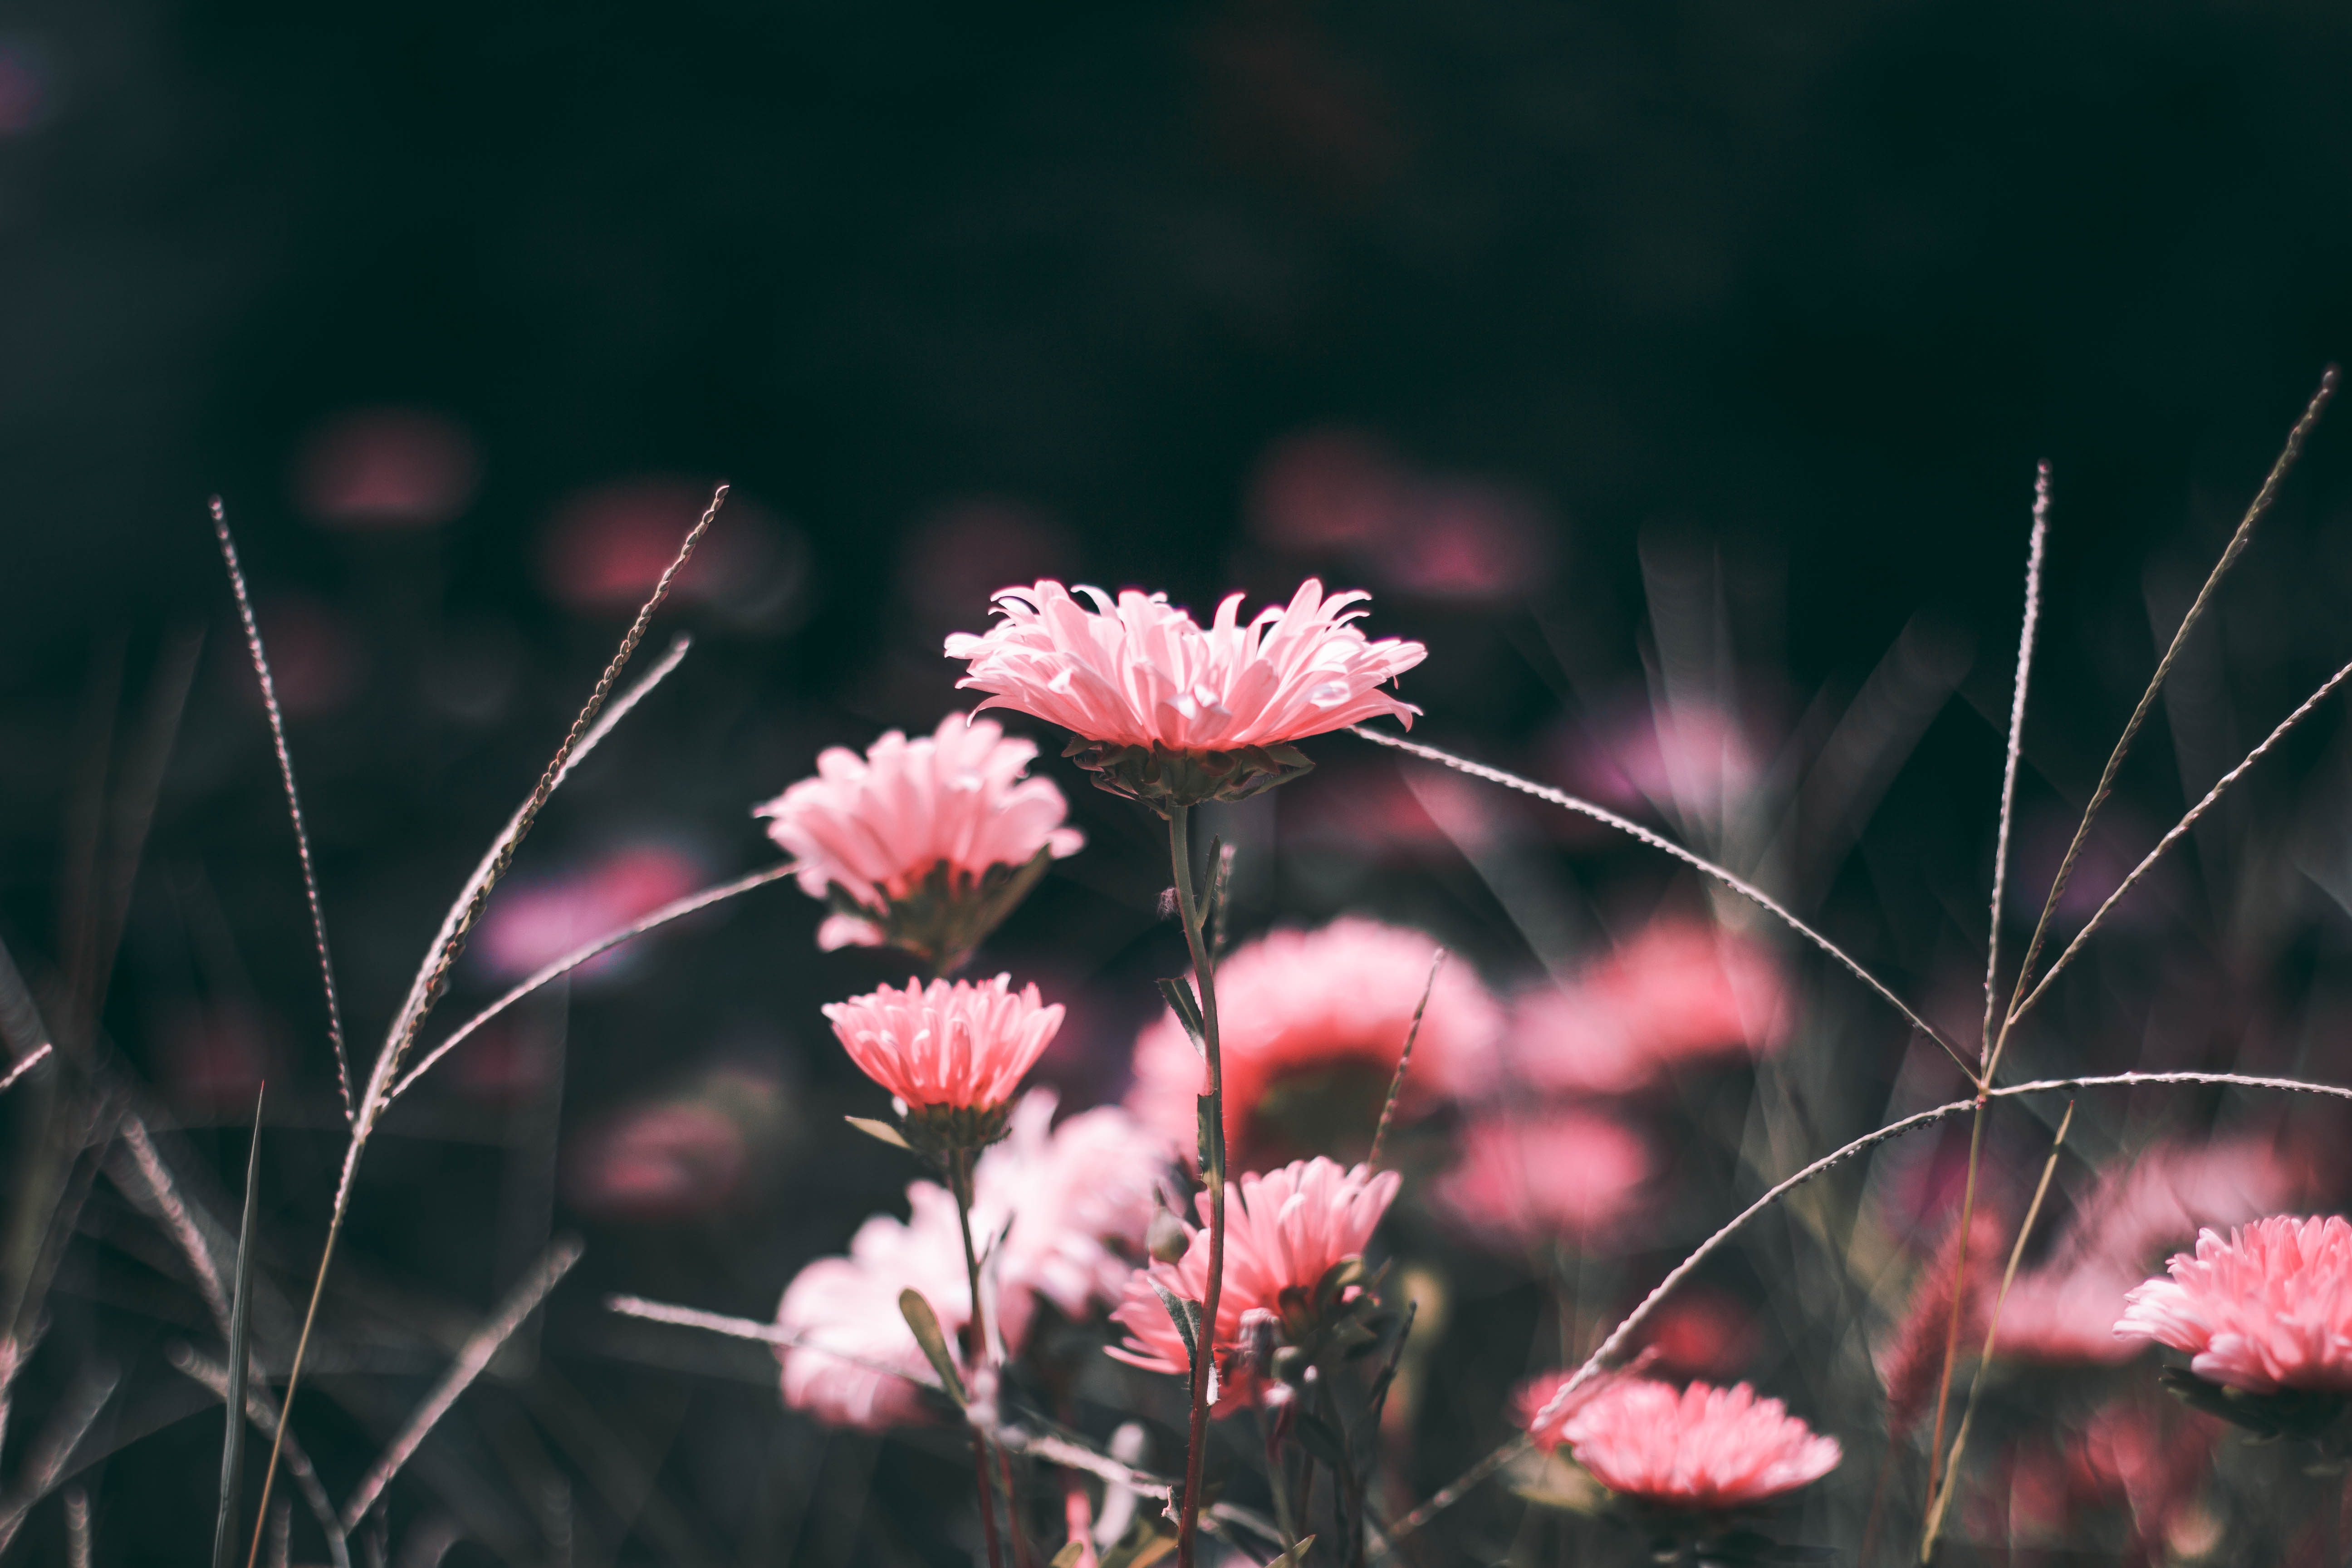 pink flowers in macro shot photography